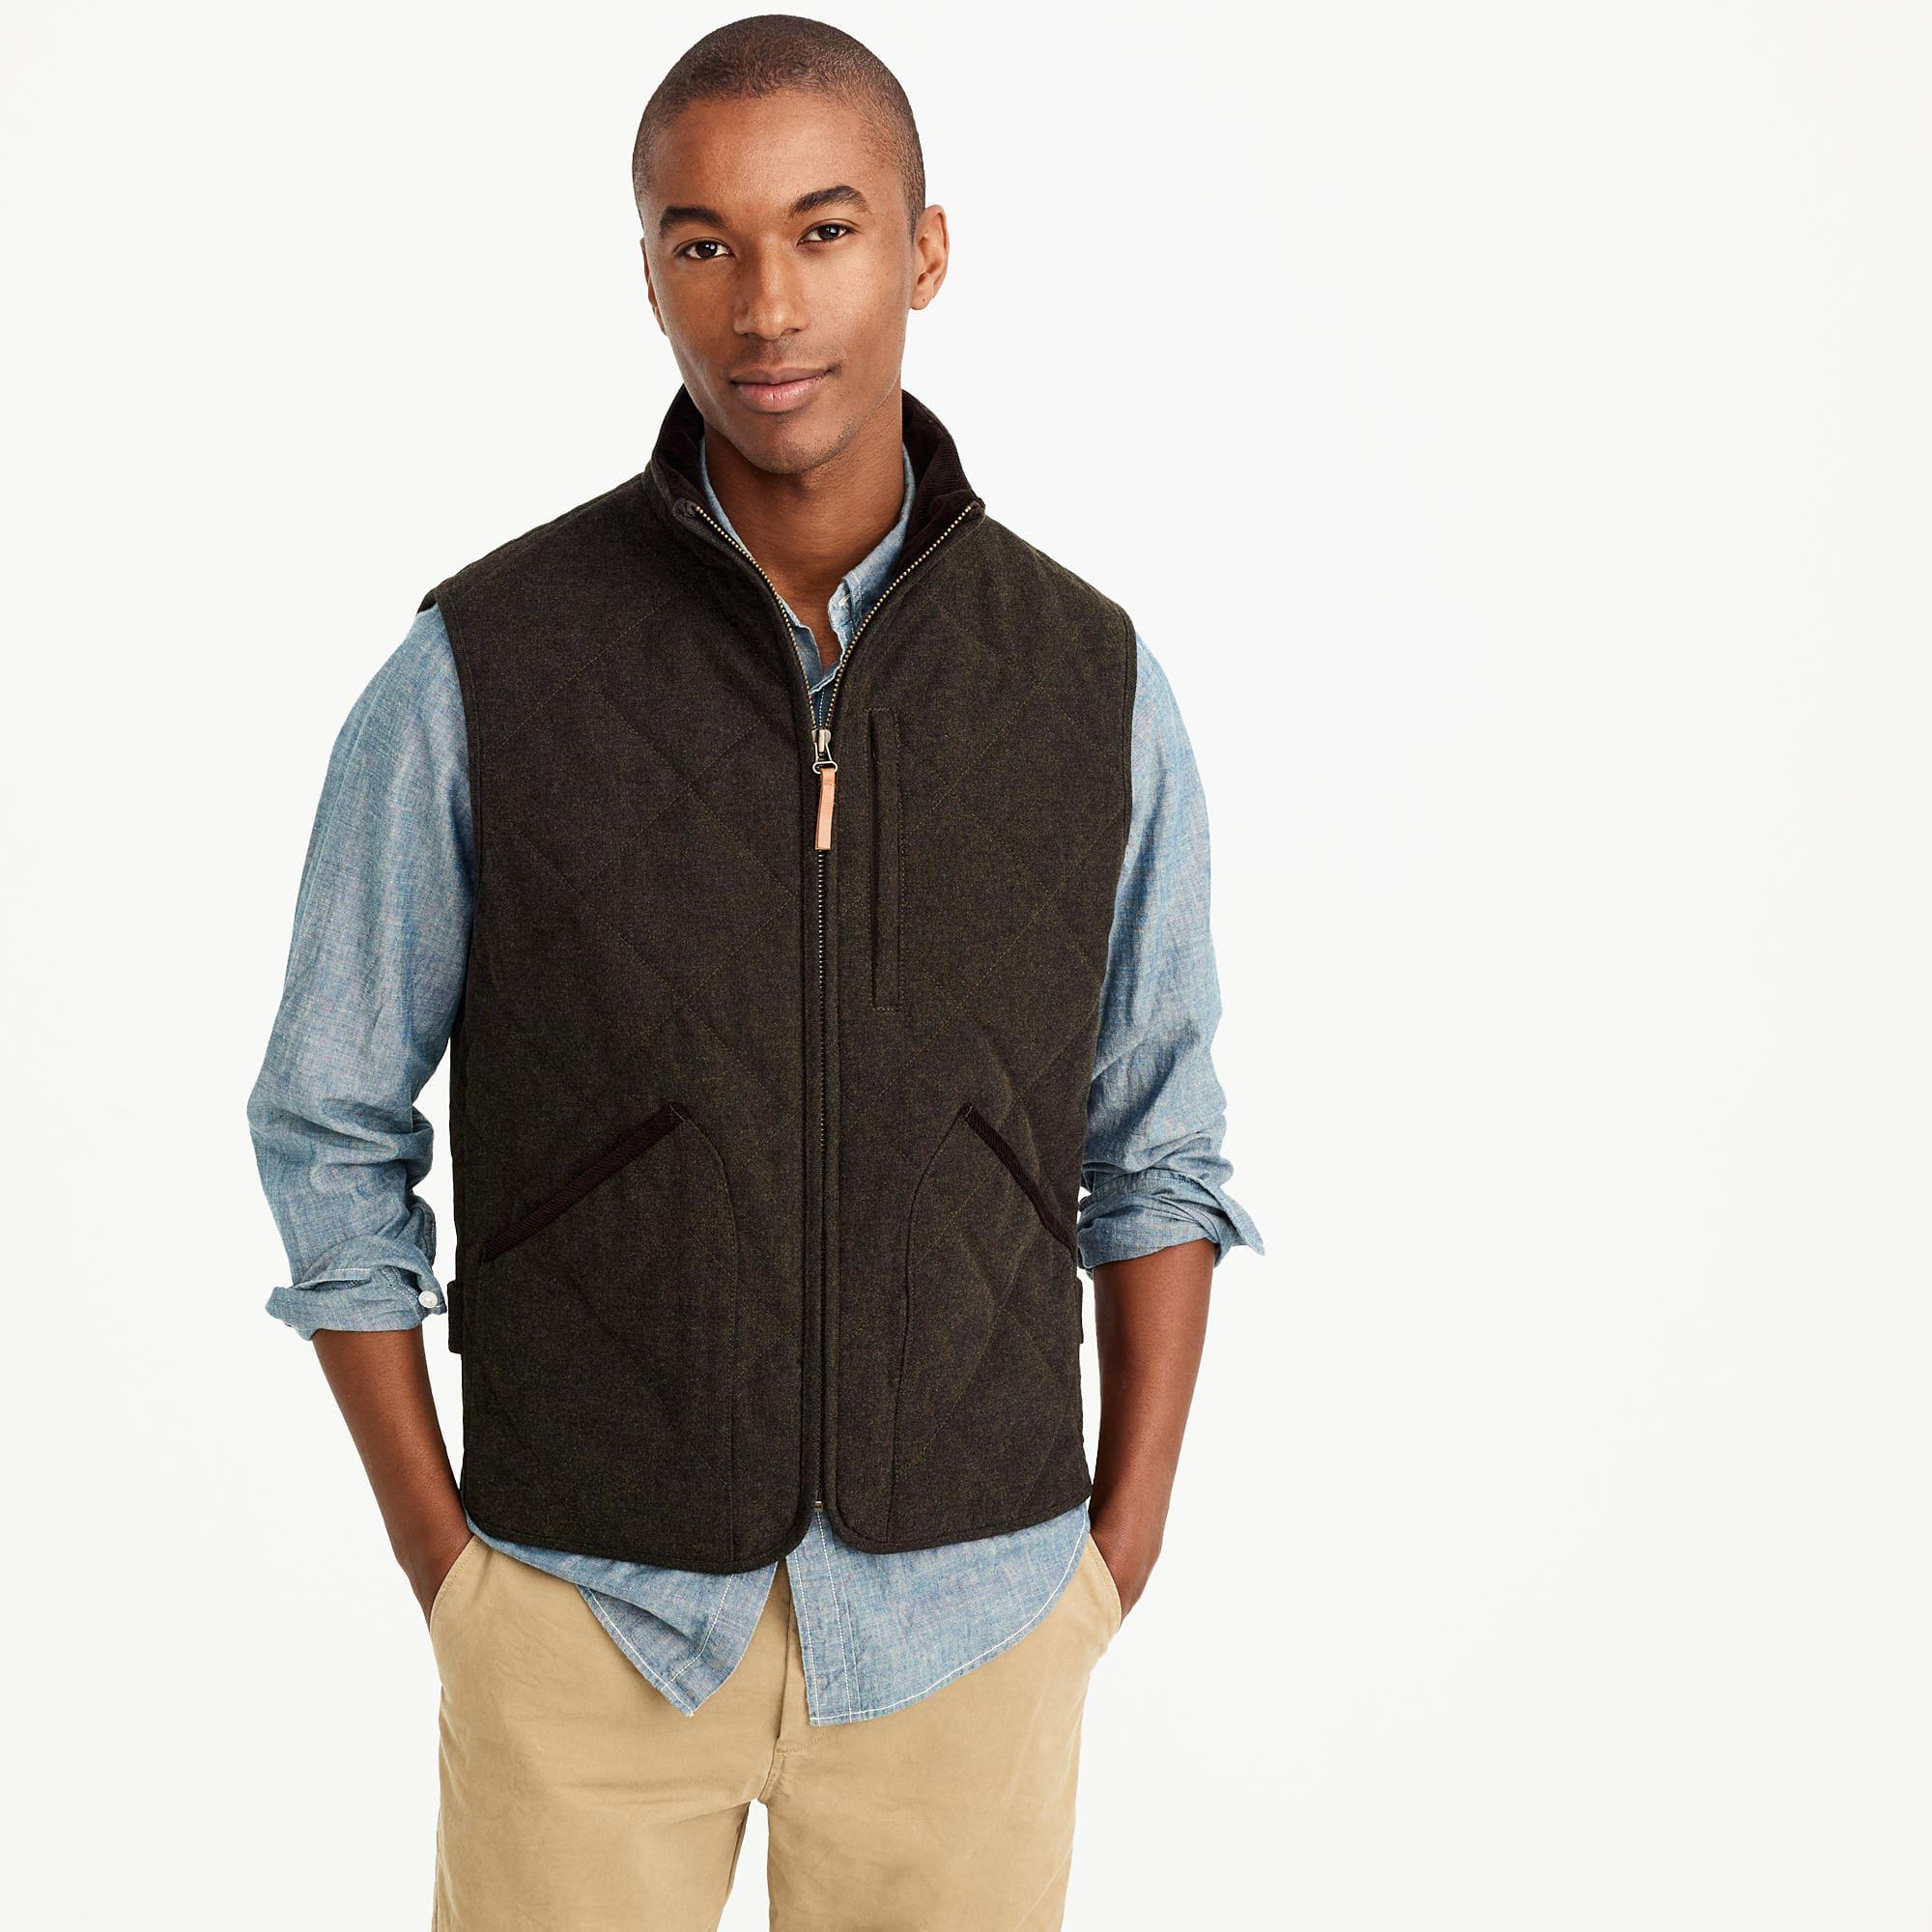 392f989ee3b7 Lyst - J.Crew Sussex Quilted Vest In Charcoal in Gray for Men